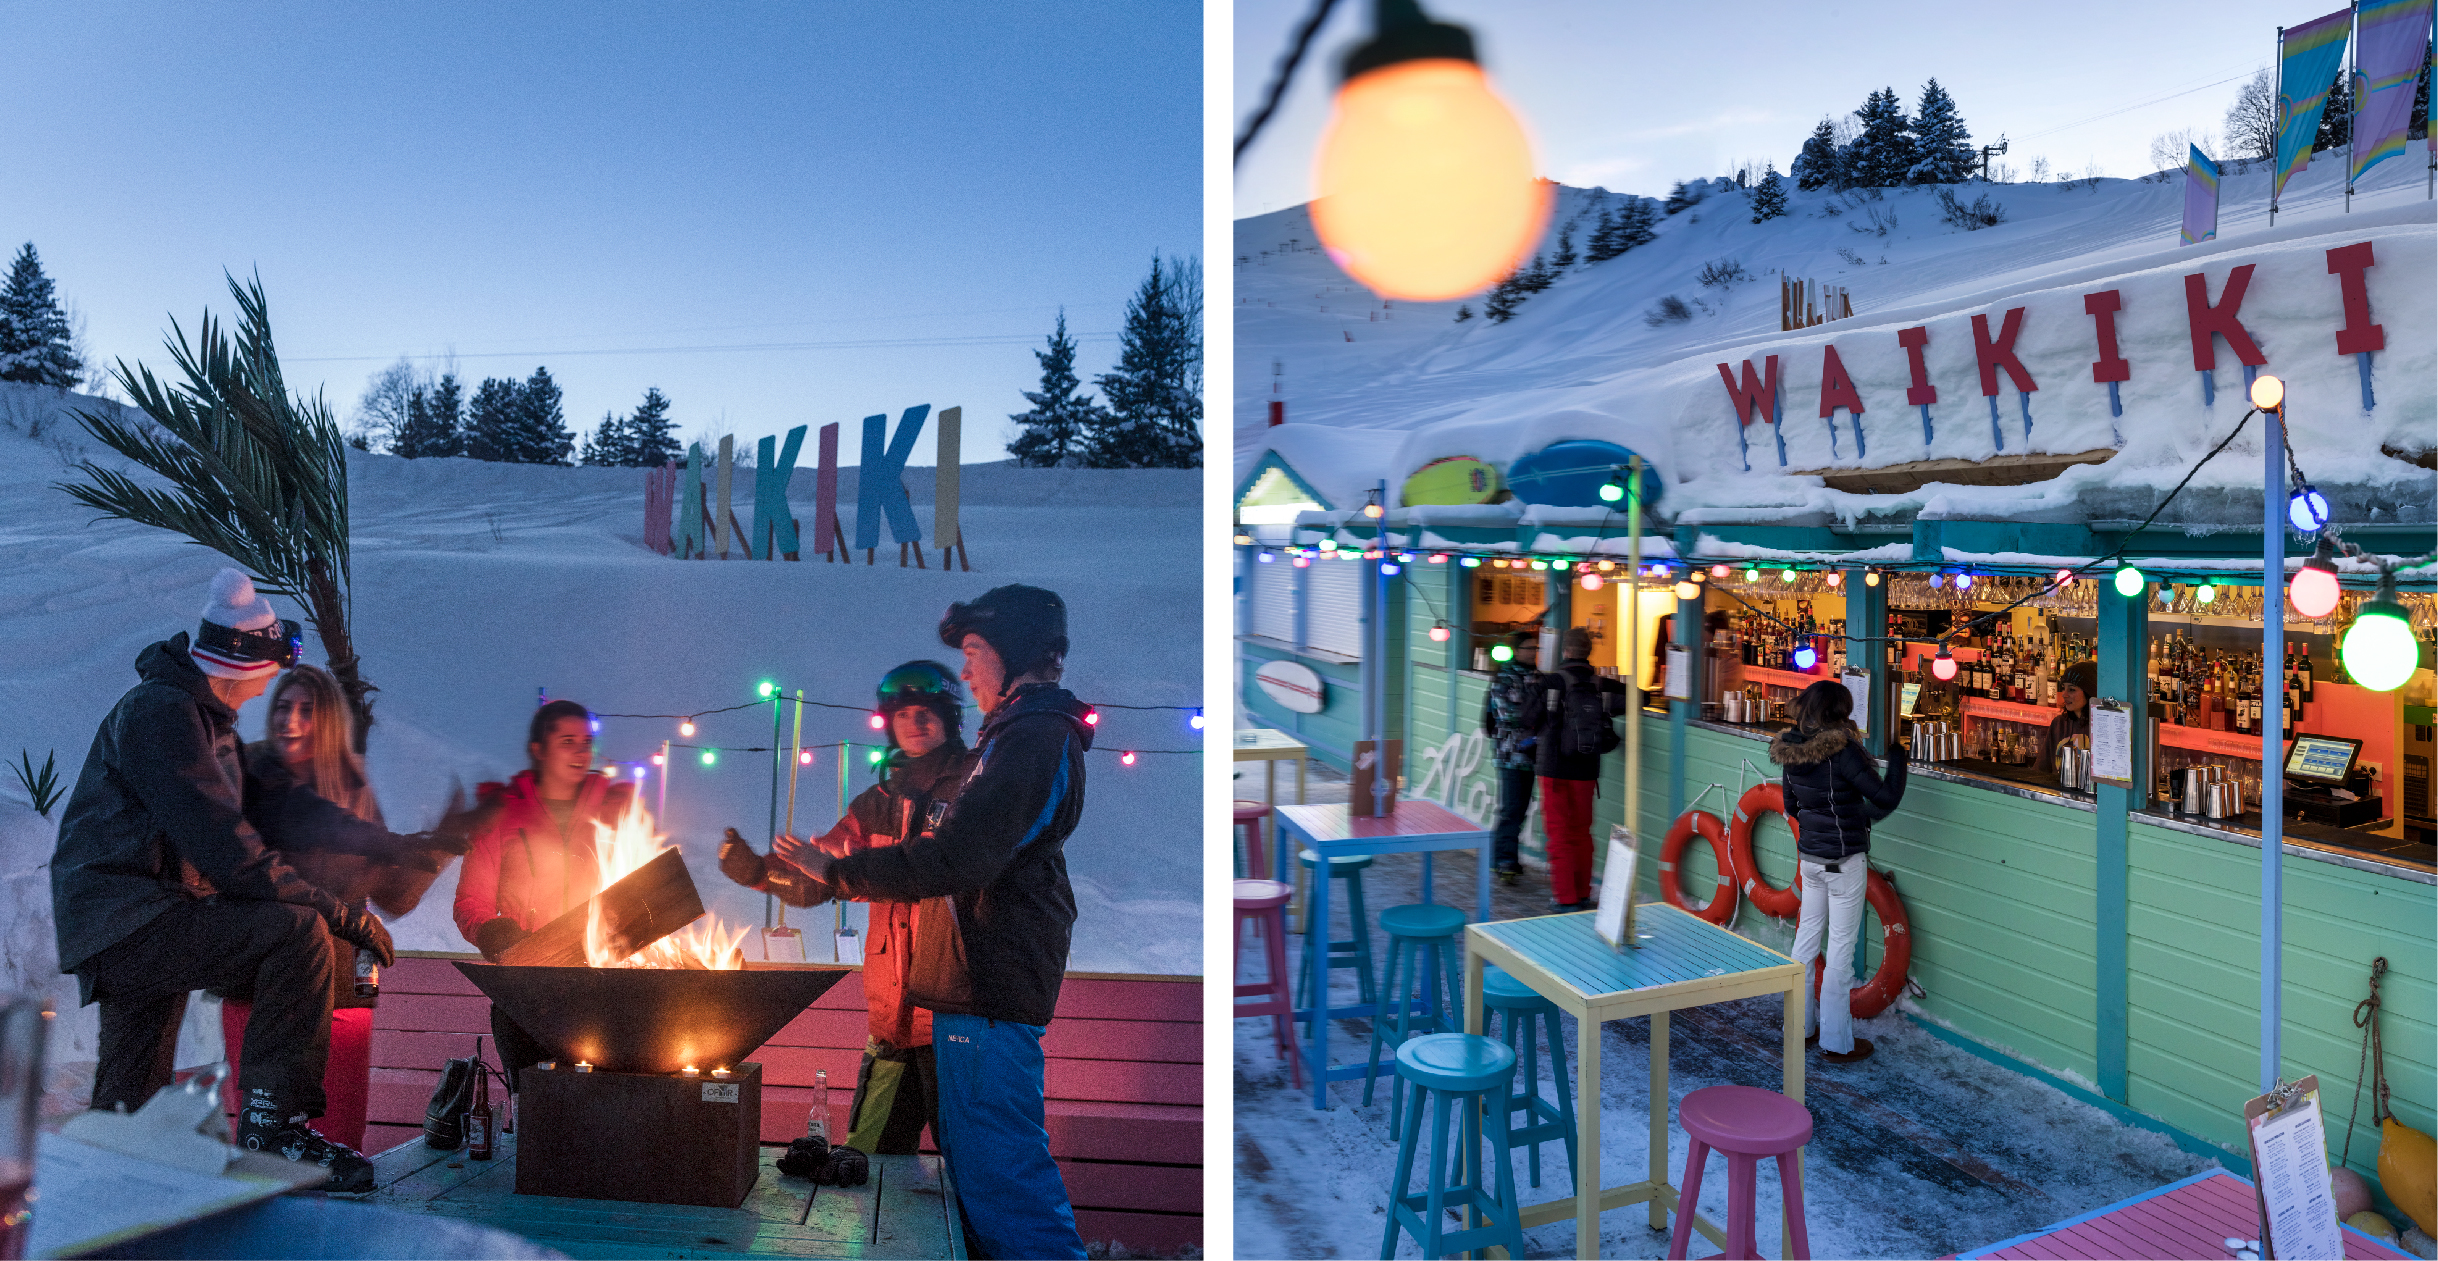 Skiers around the fire pit and bar of Waikiki Courchevel 1850